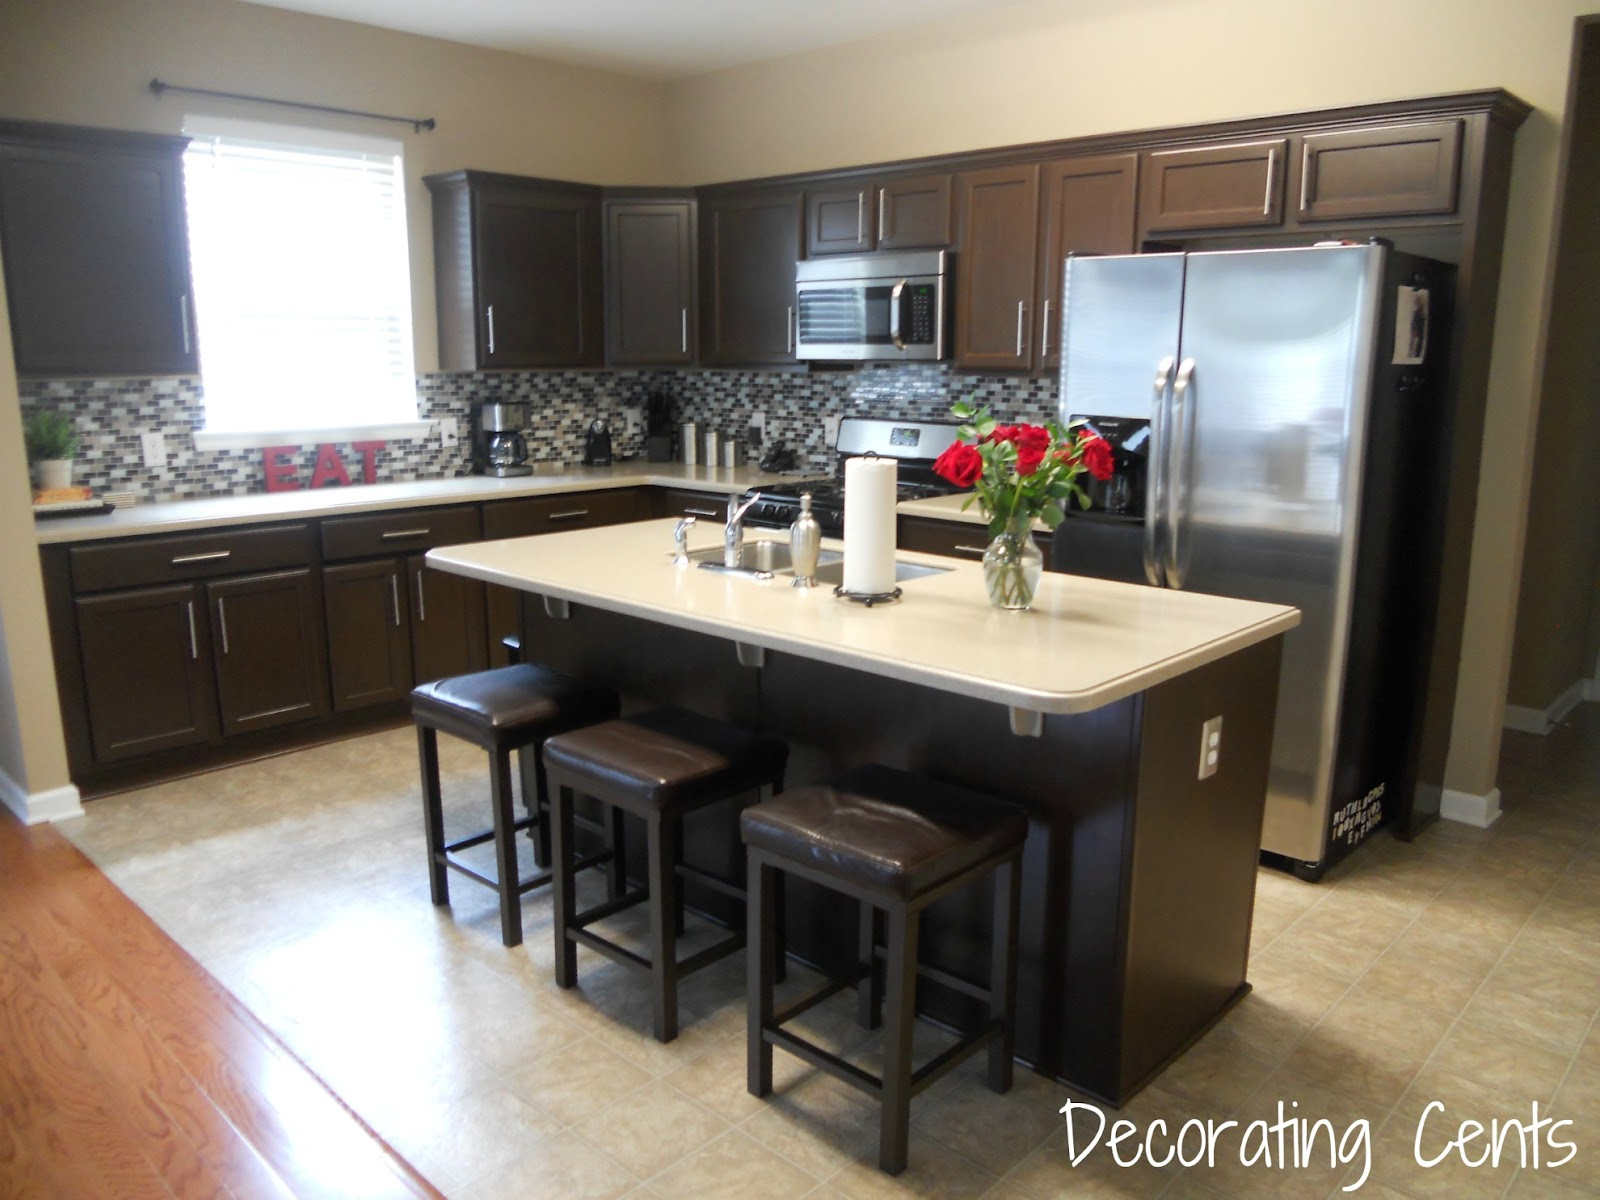 Decorating cents kitchen cabinets revealed for Kitchen for kitchen